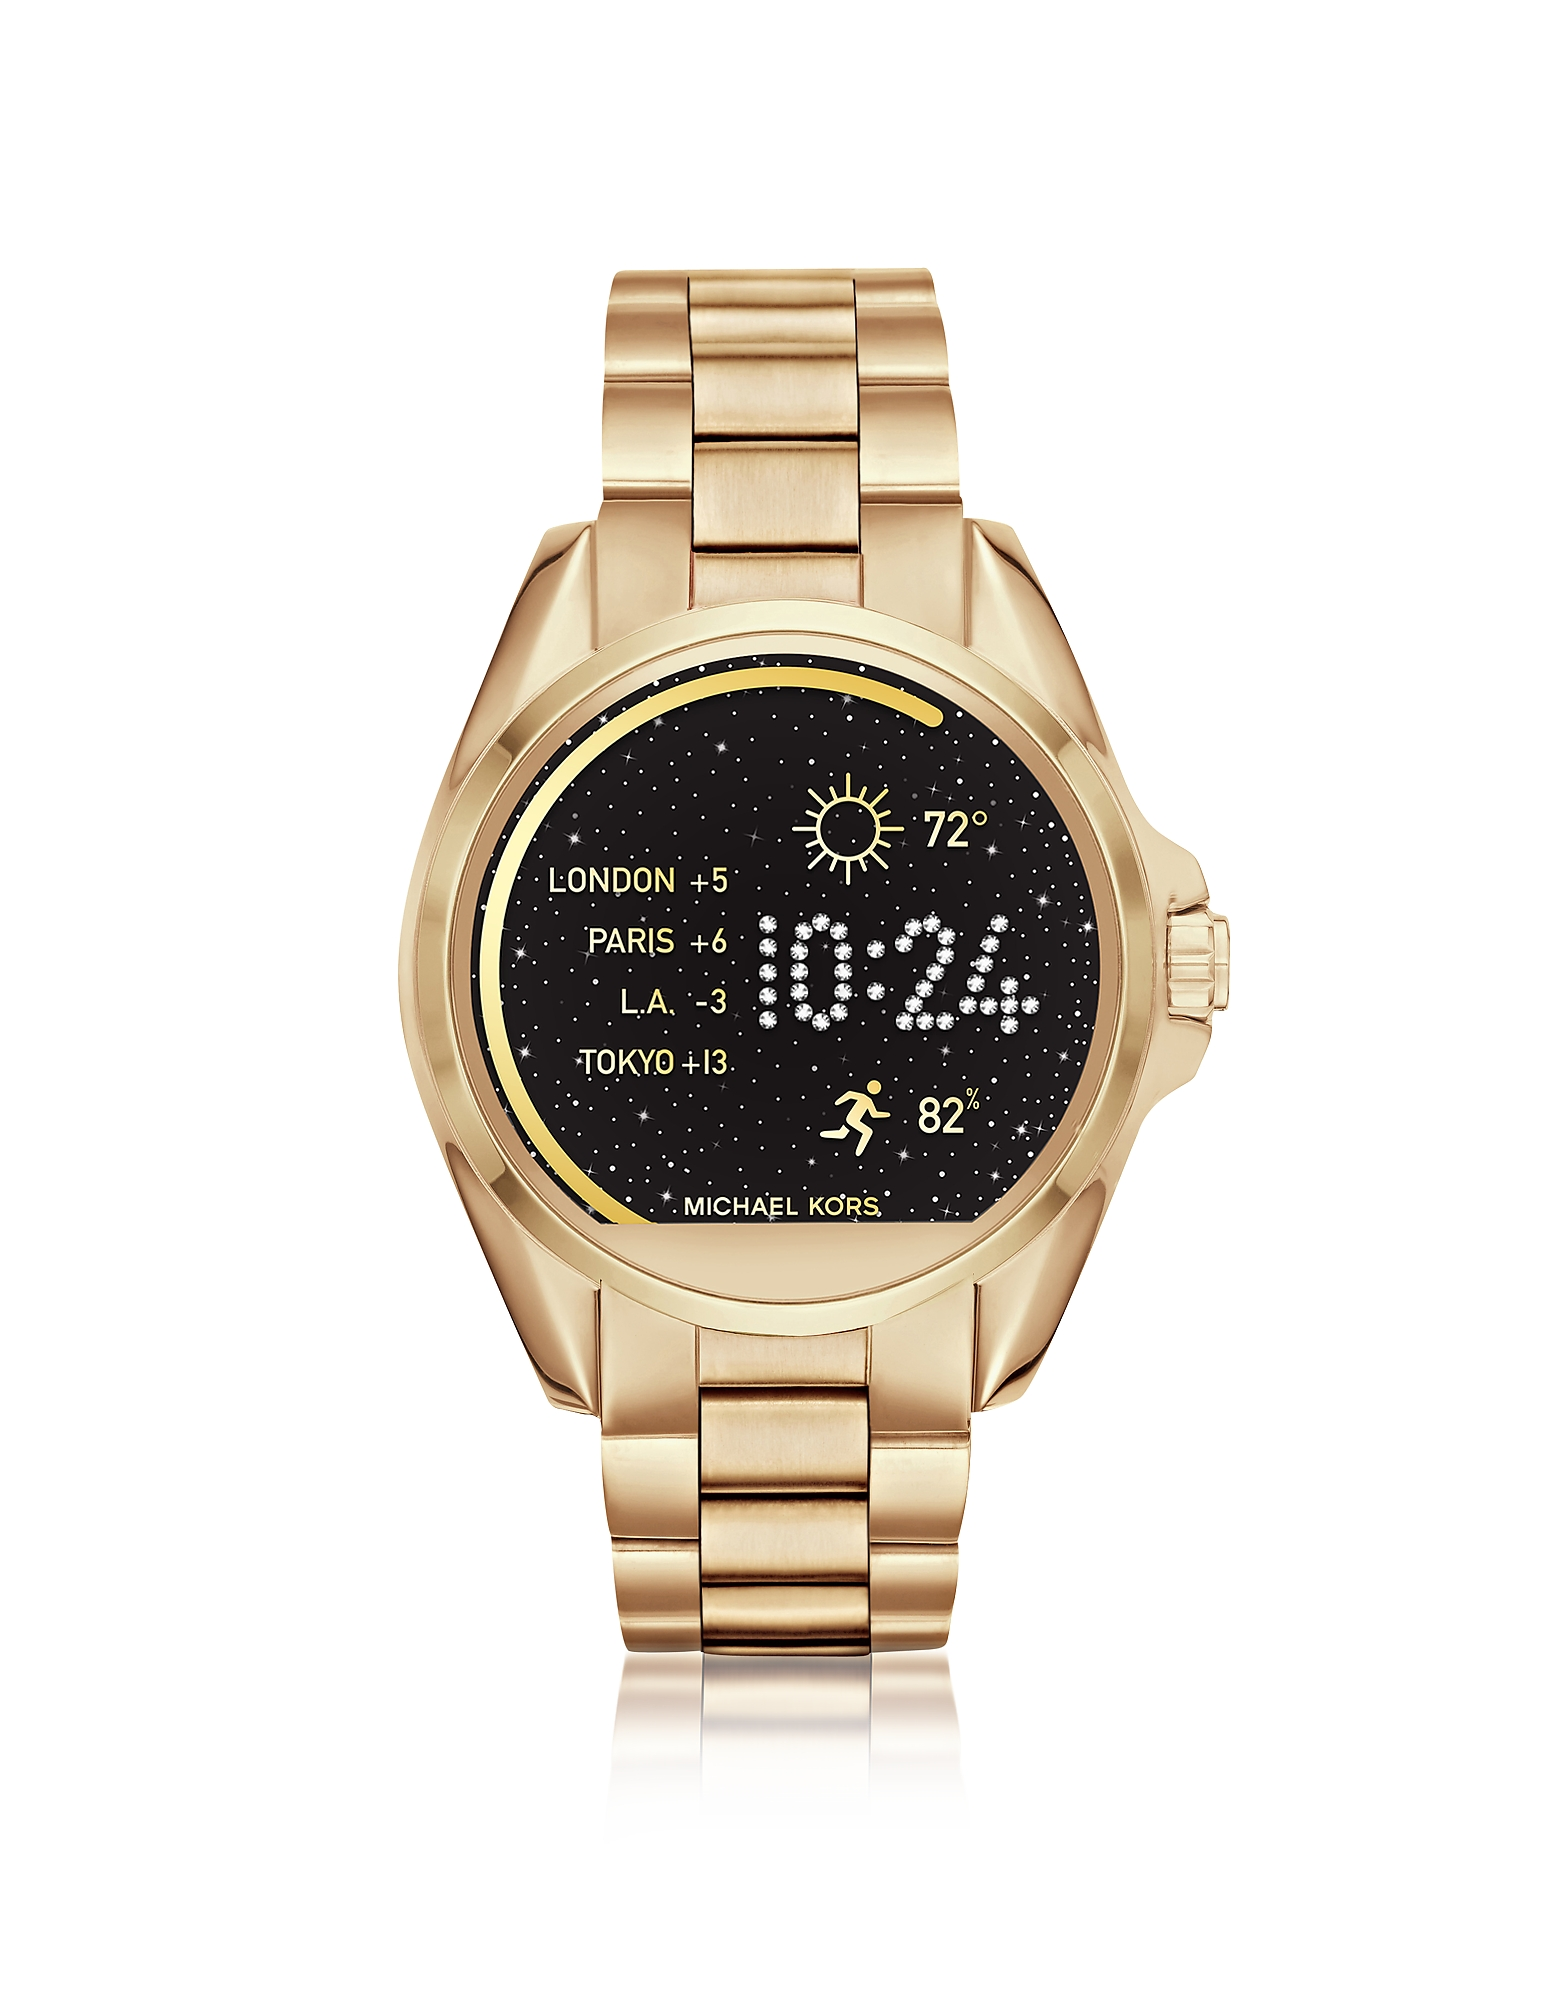 Michael Kors Women's Watches, Gold-tone Stainlees Steel Bradshaw Women's Smartwatch